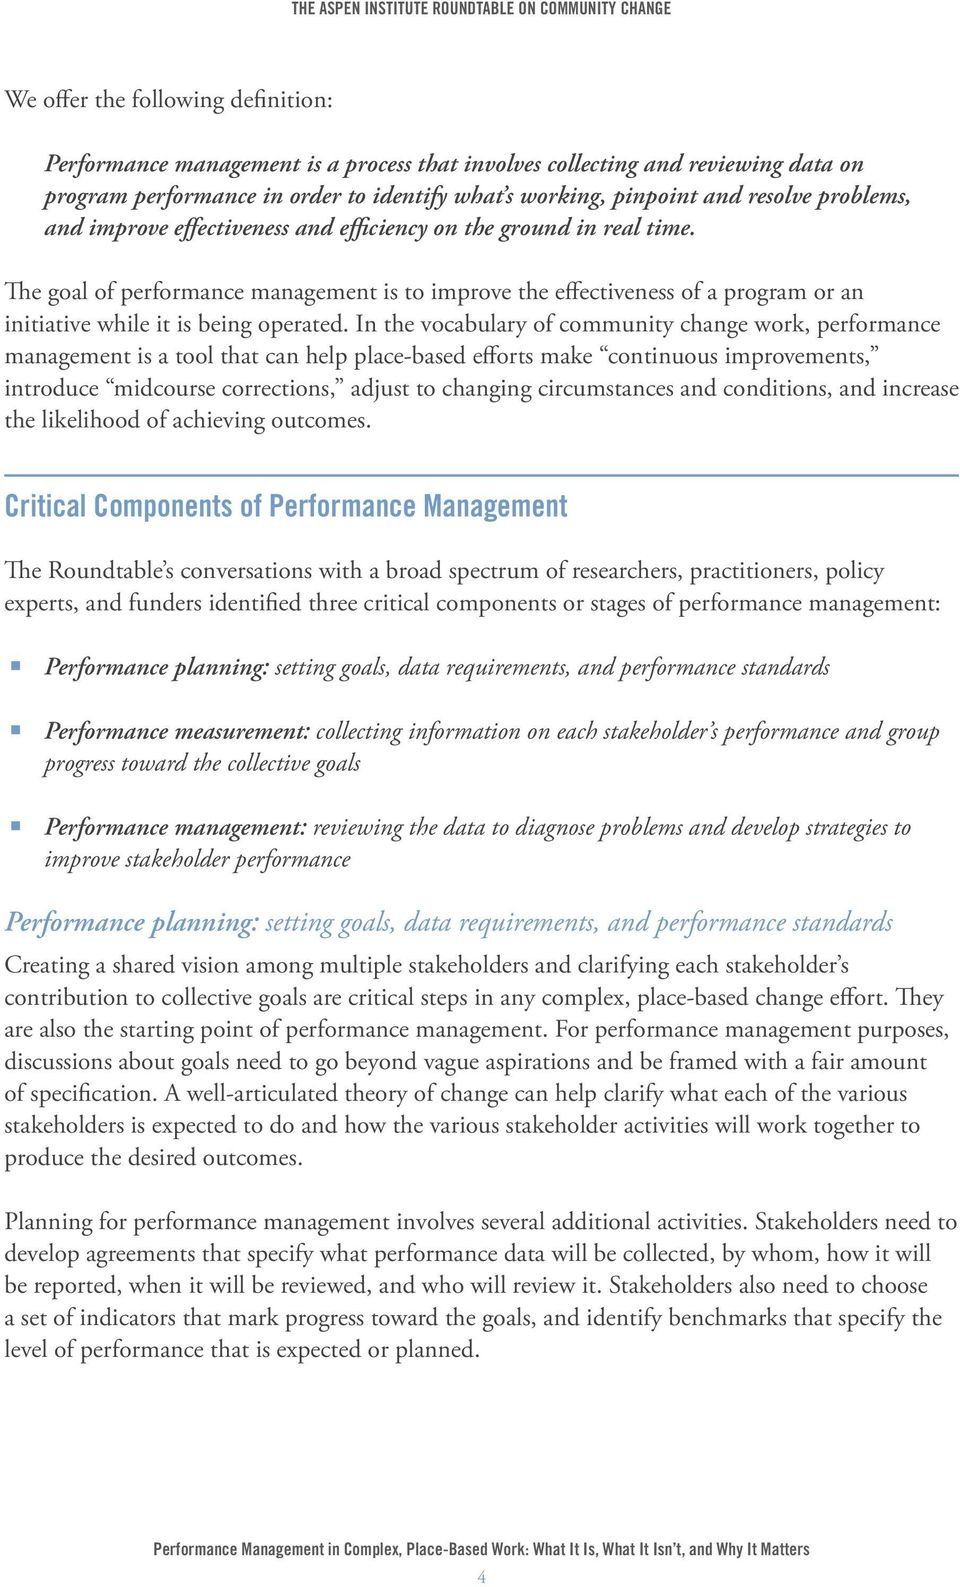 The goal of performance management is to improve the effectiveness of a program or an initiative while it is being operated.